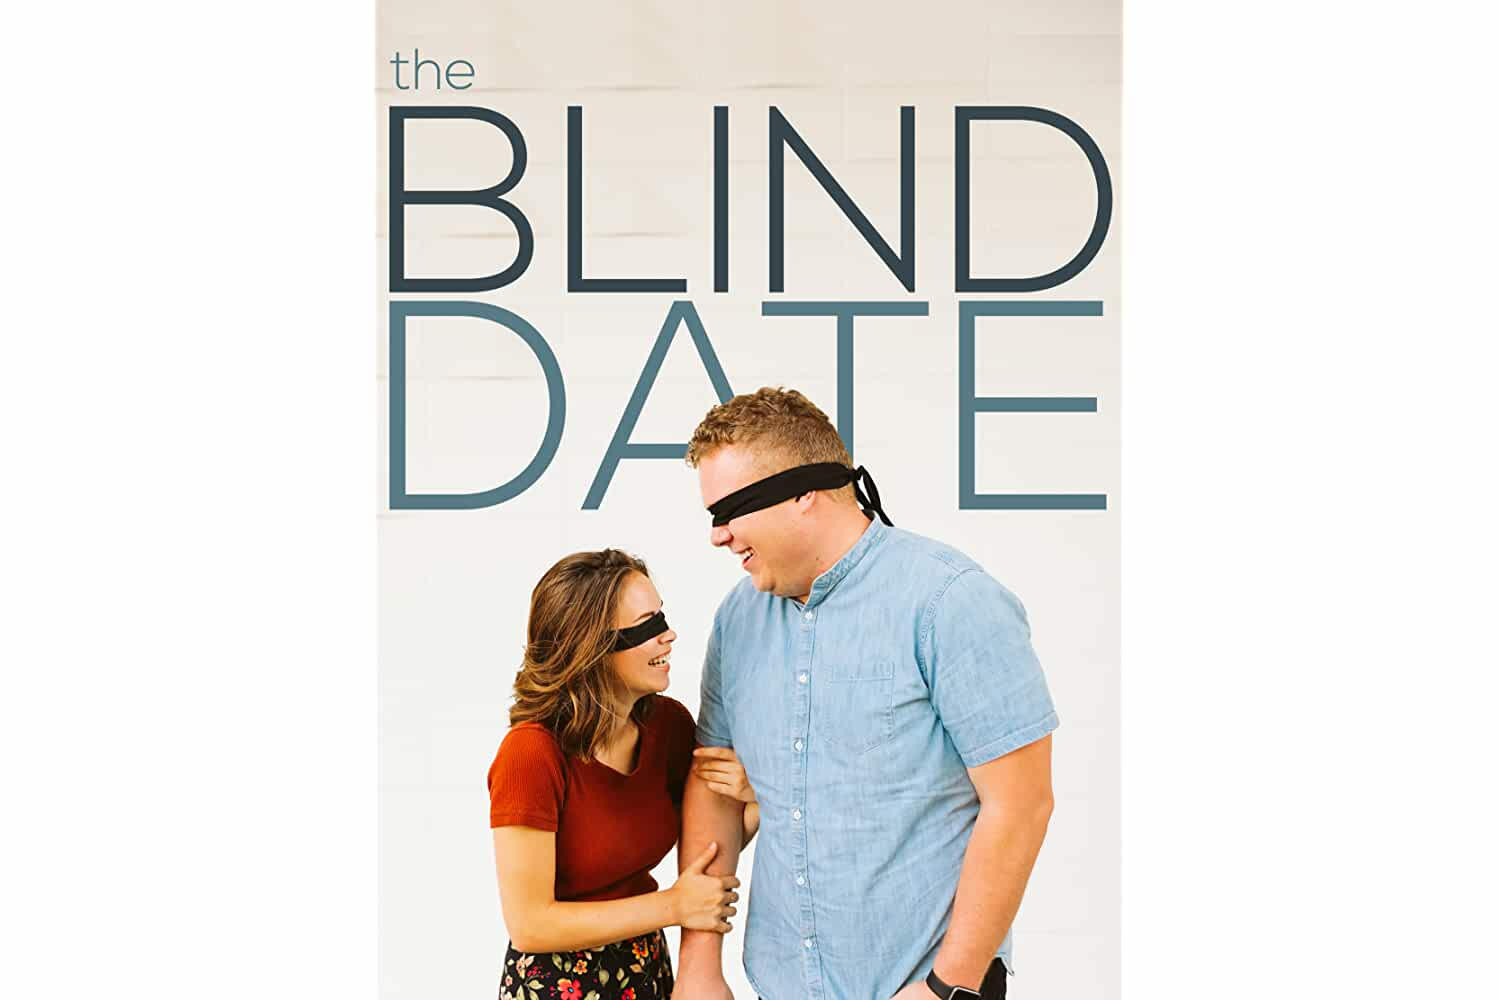 The Blind Date (2018)